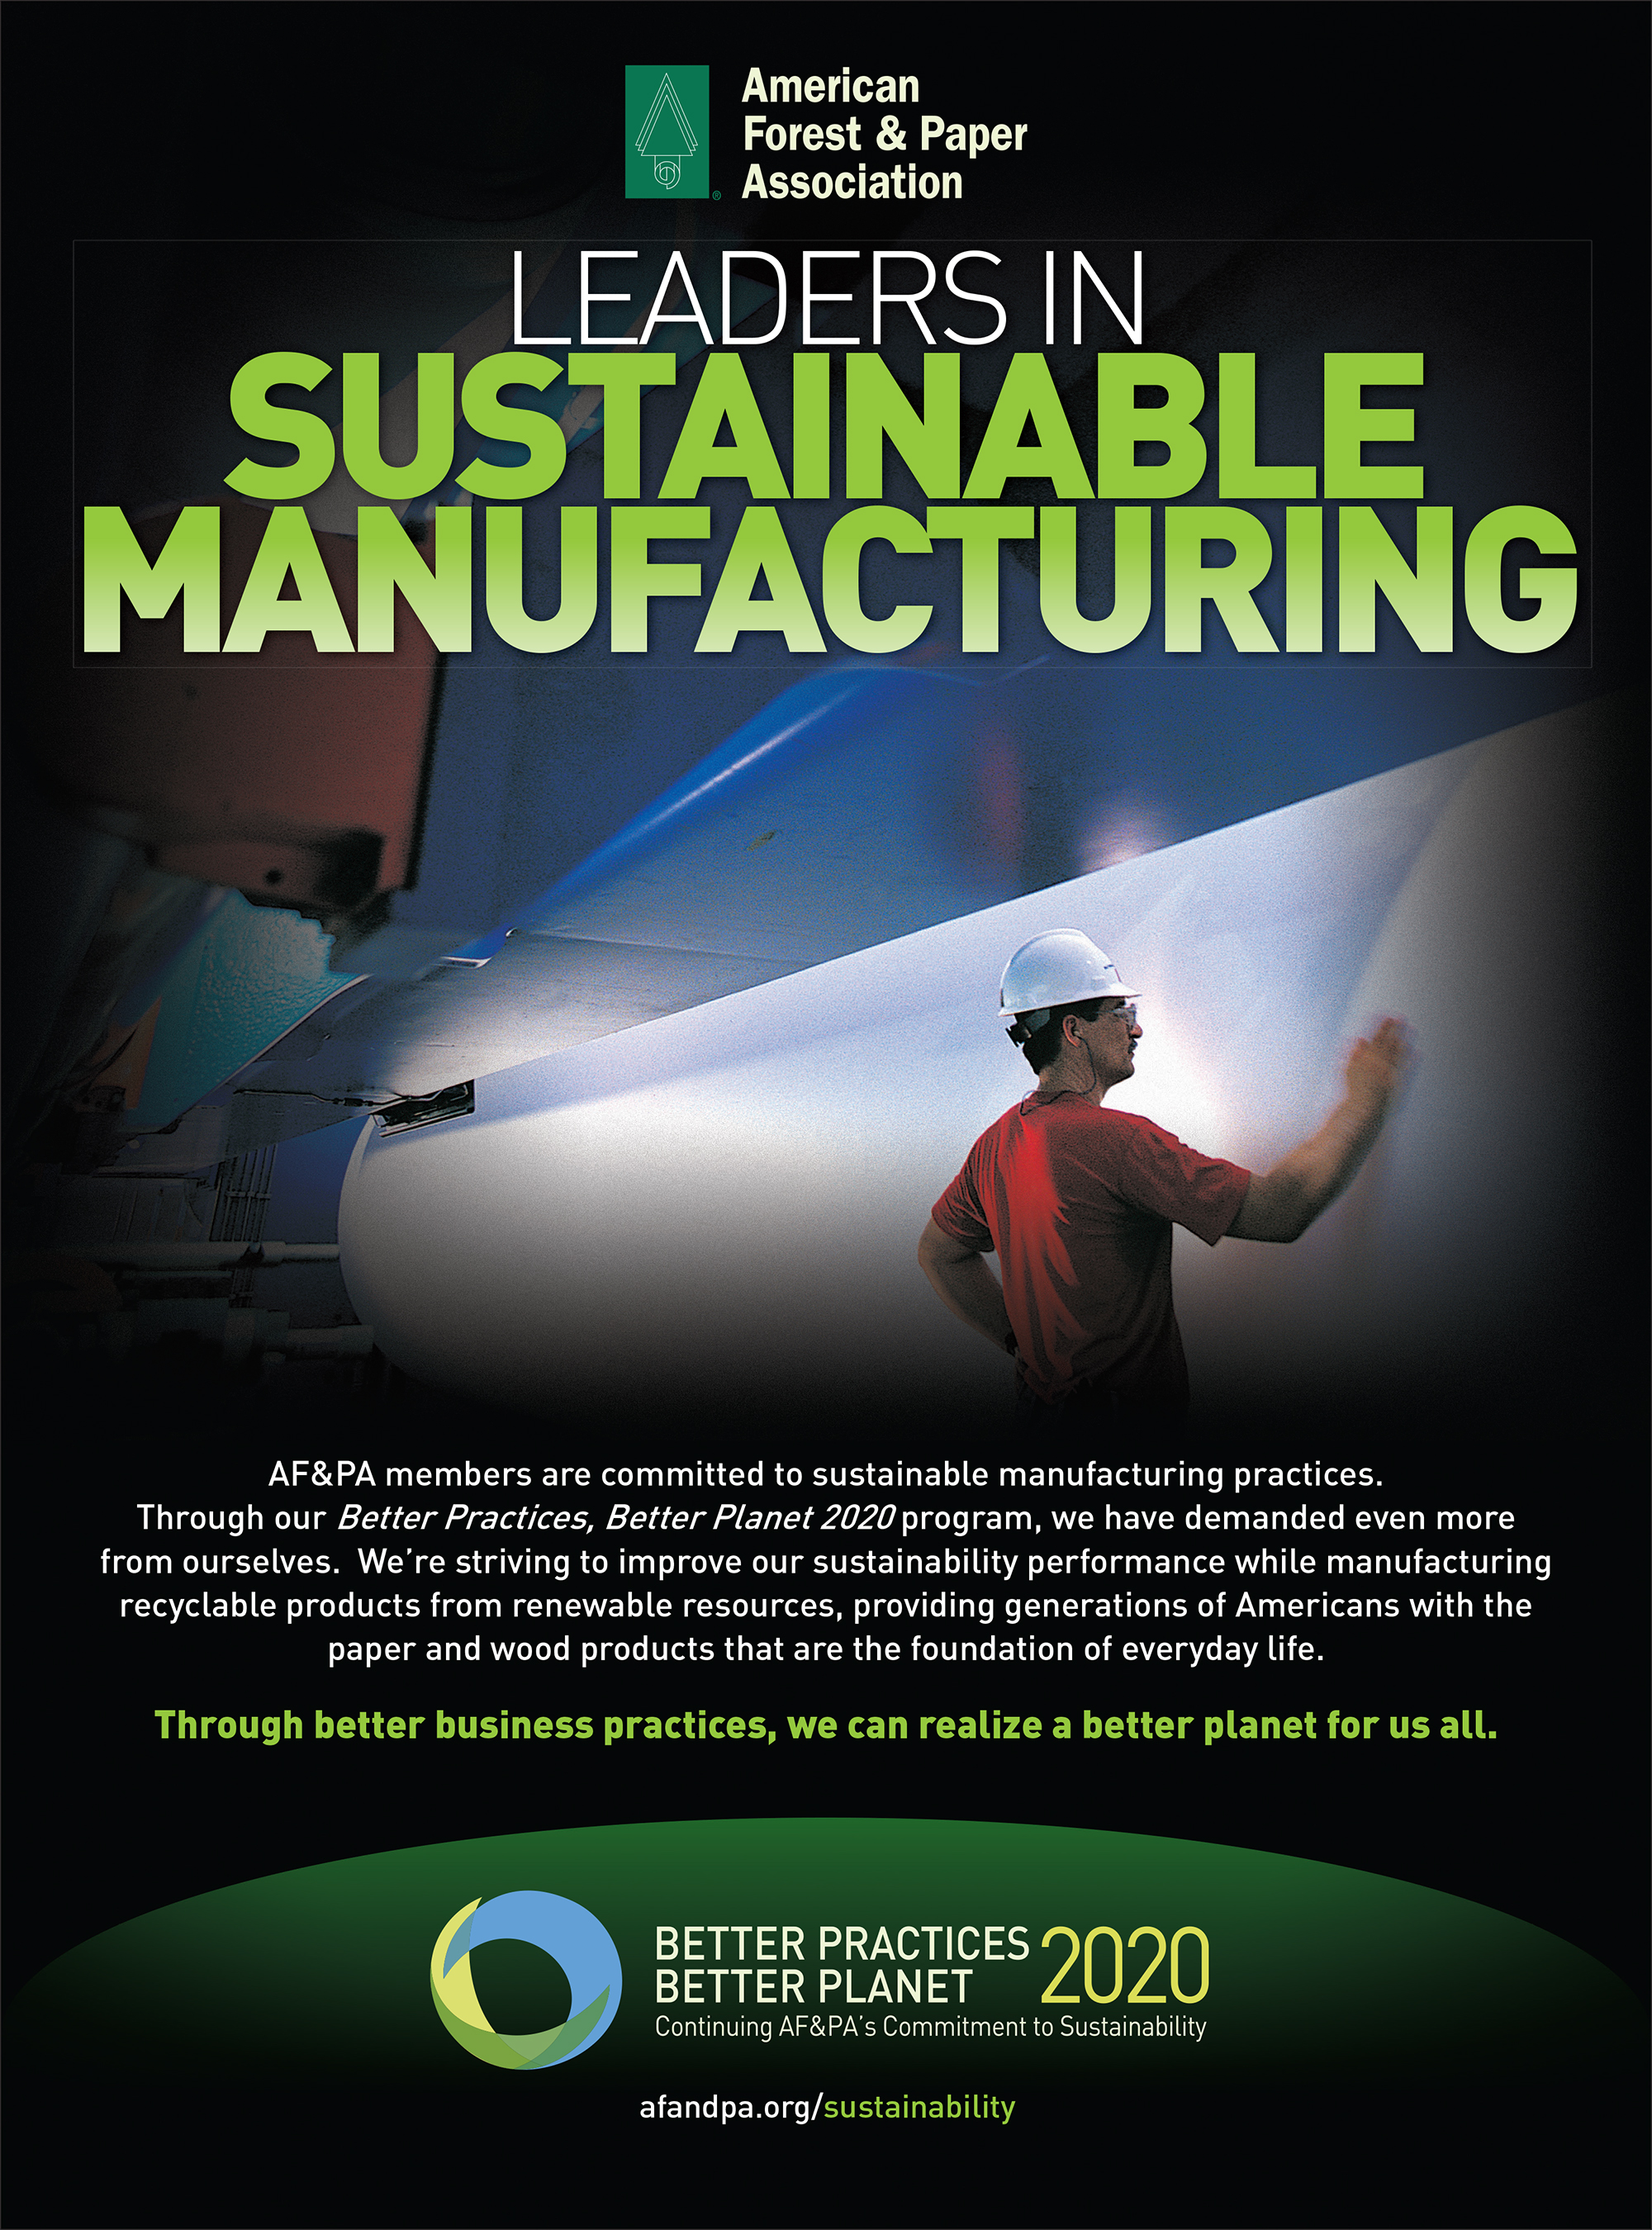 We are leaders in sustainability.